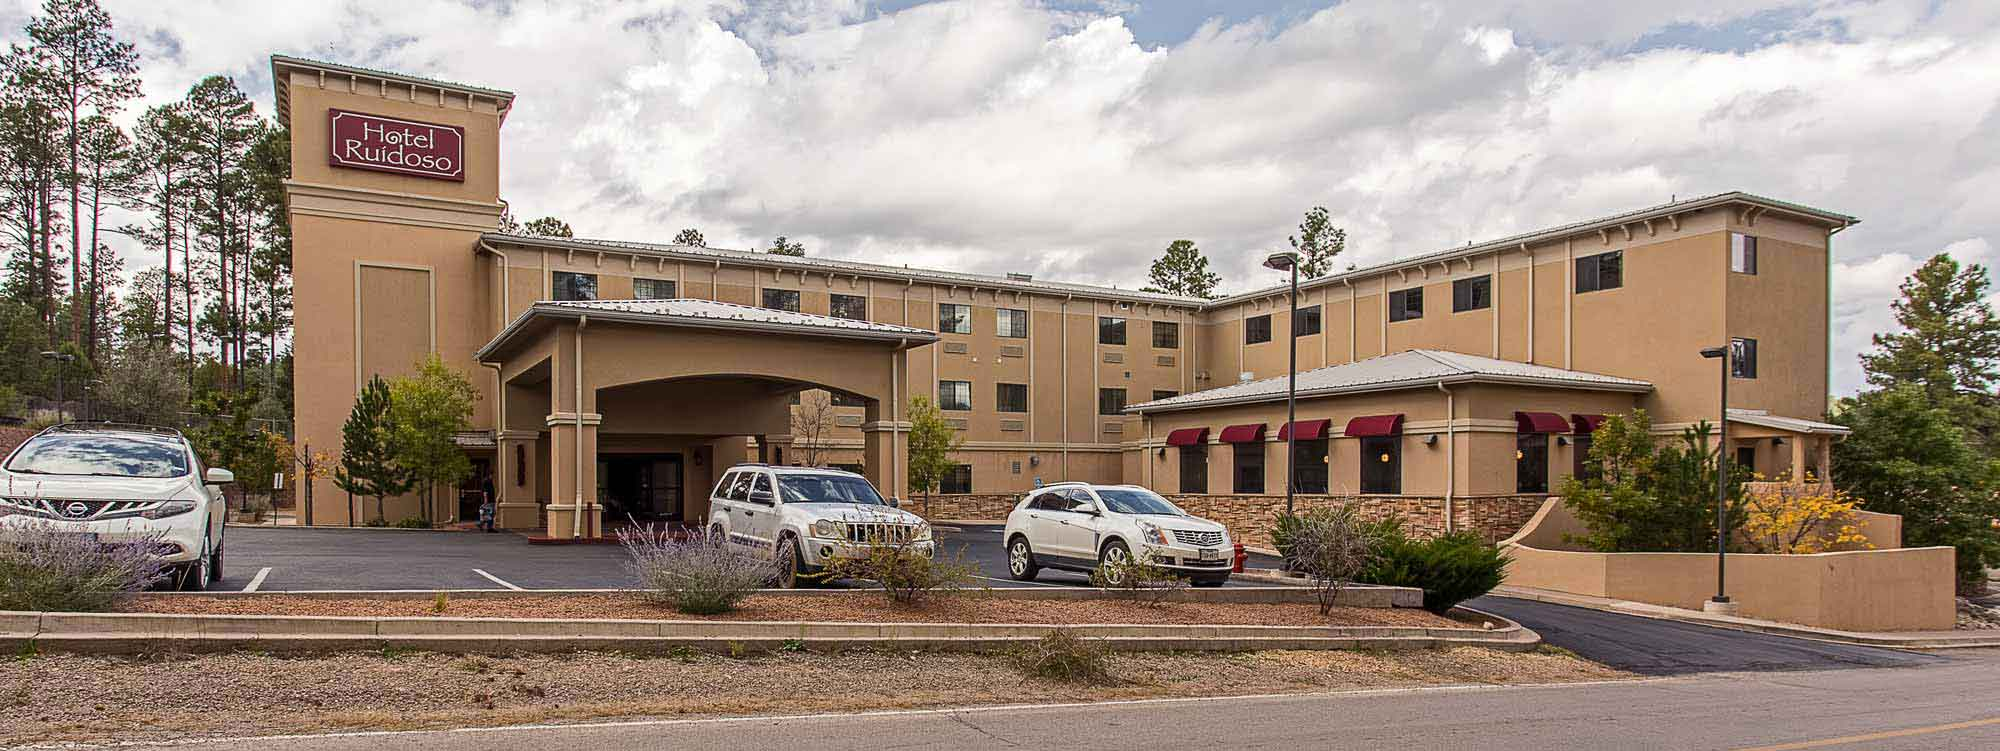 hotel ruidoso budget hotels discount holiday hotel new. Black Bedroom Furniture Sets. Home Design Ideas